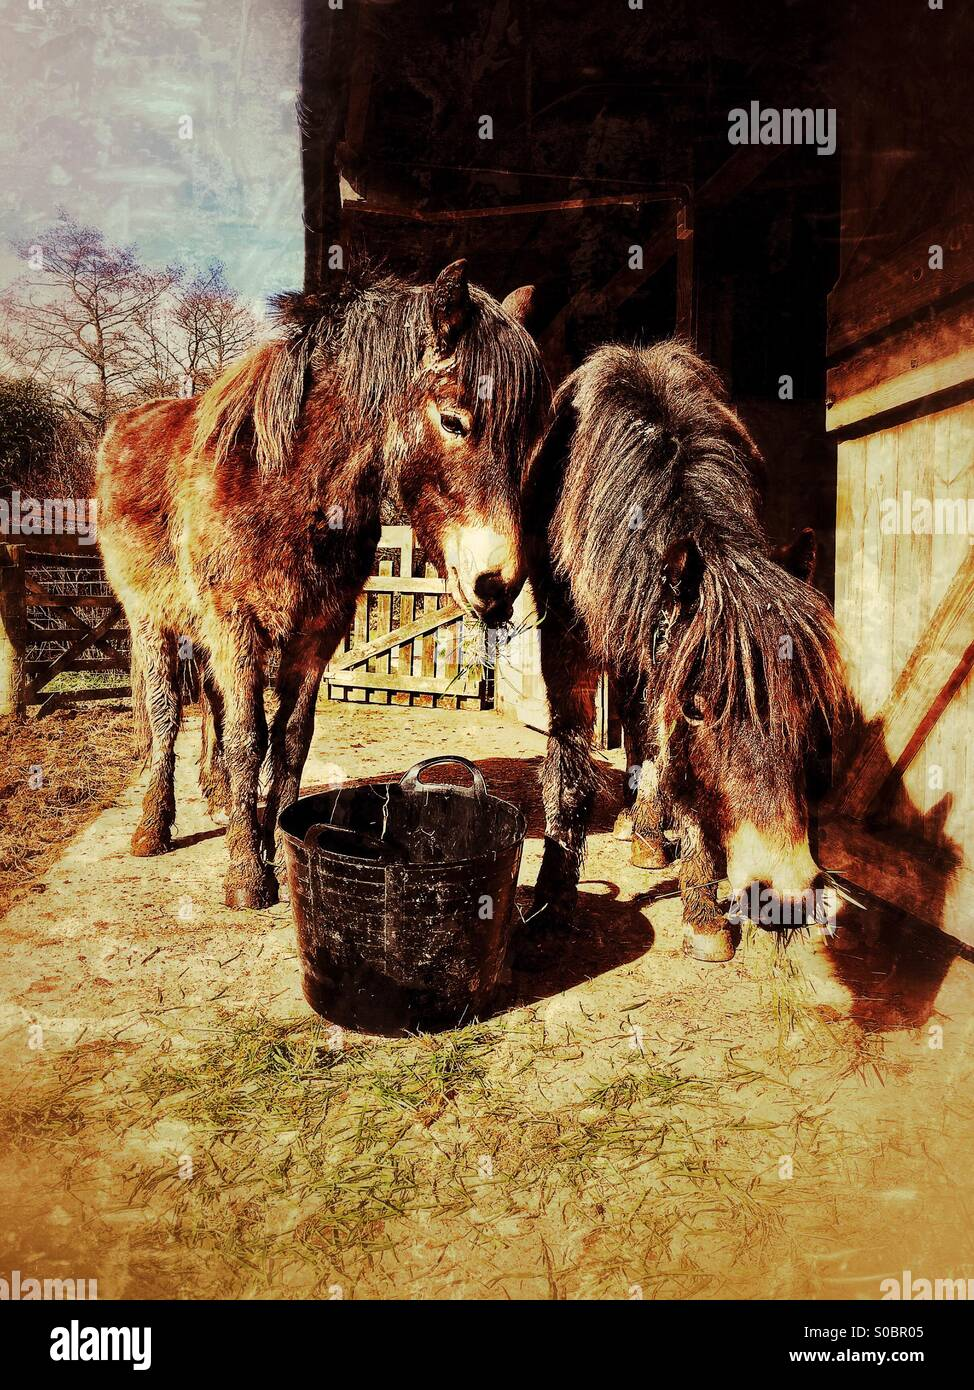 Mum has picked us some grass as we've trashed our muddy paddock!! - Stock Image